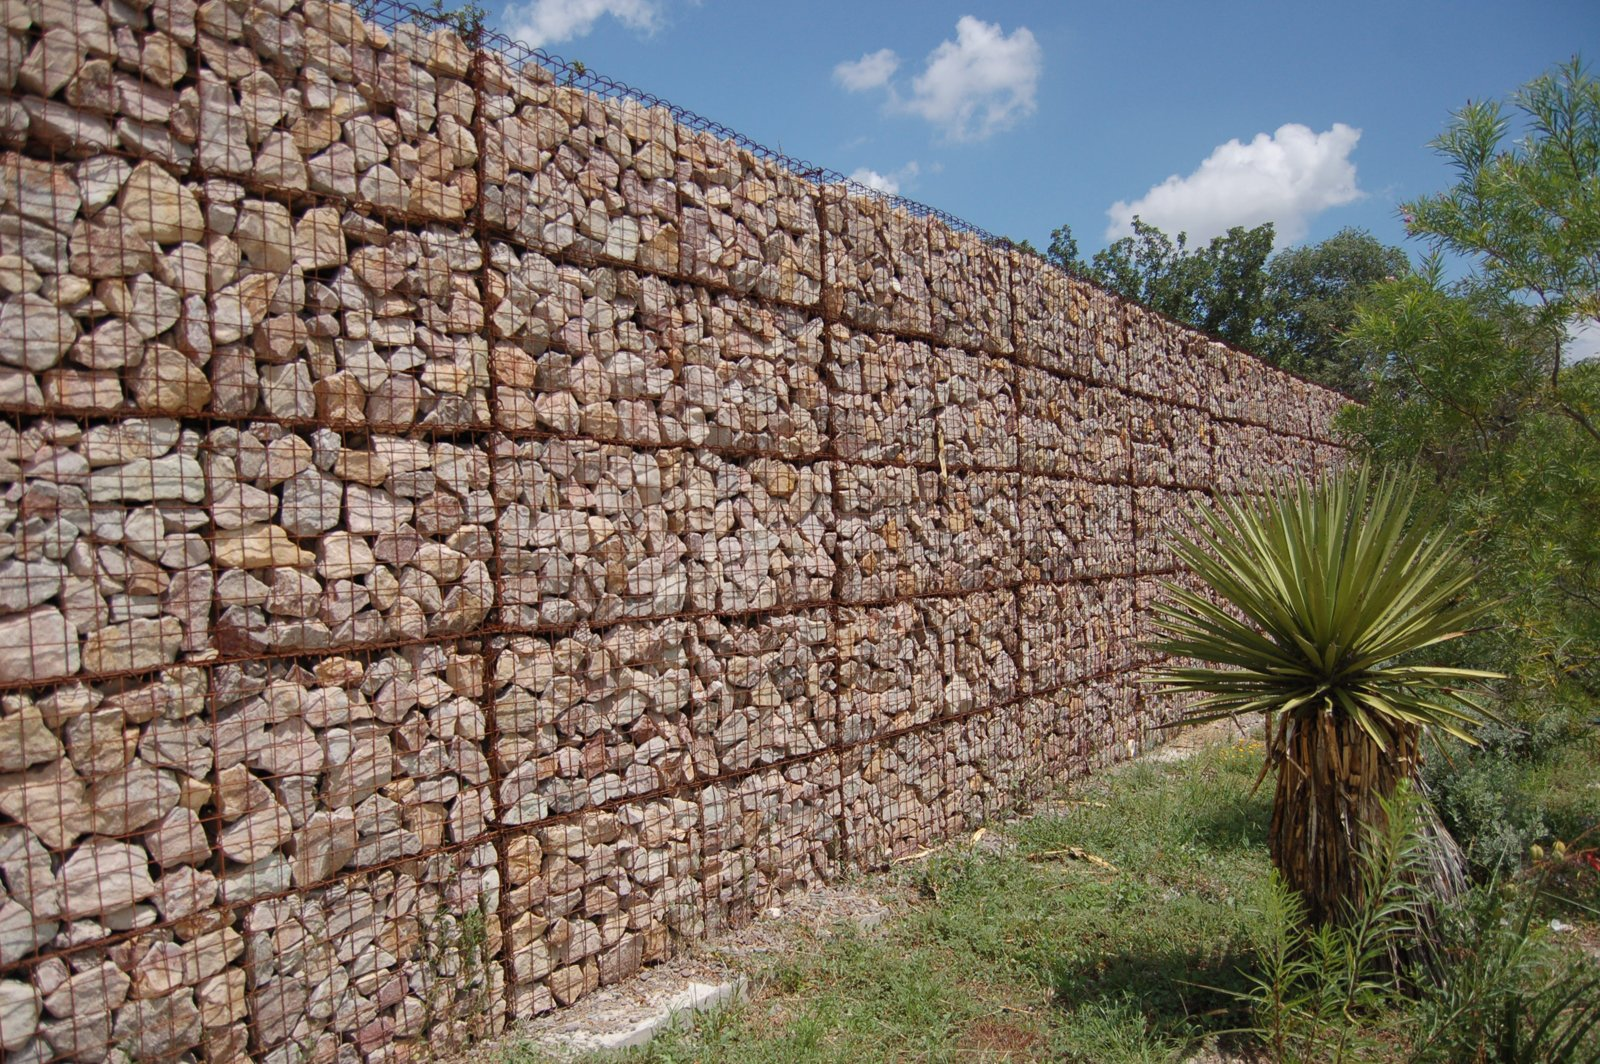 As we were driving around, I spotted this incredible gabion fence. Massive and perfectly arranged, the fence surrounded a privately owned community events space.  30+ Best Modern Fences by William Lamb from Two Days in Marfa, Texas